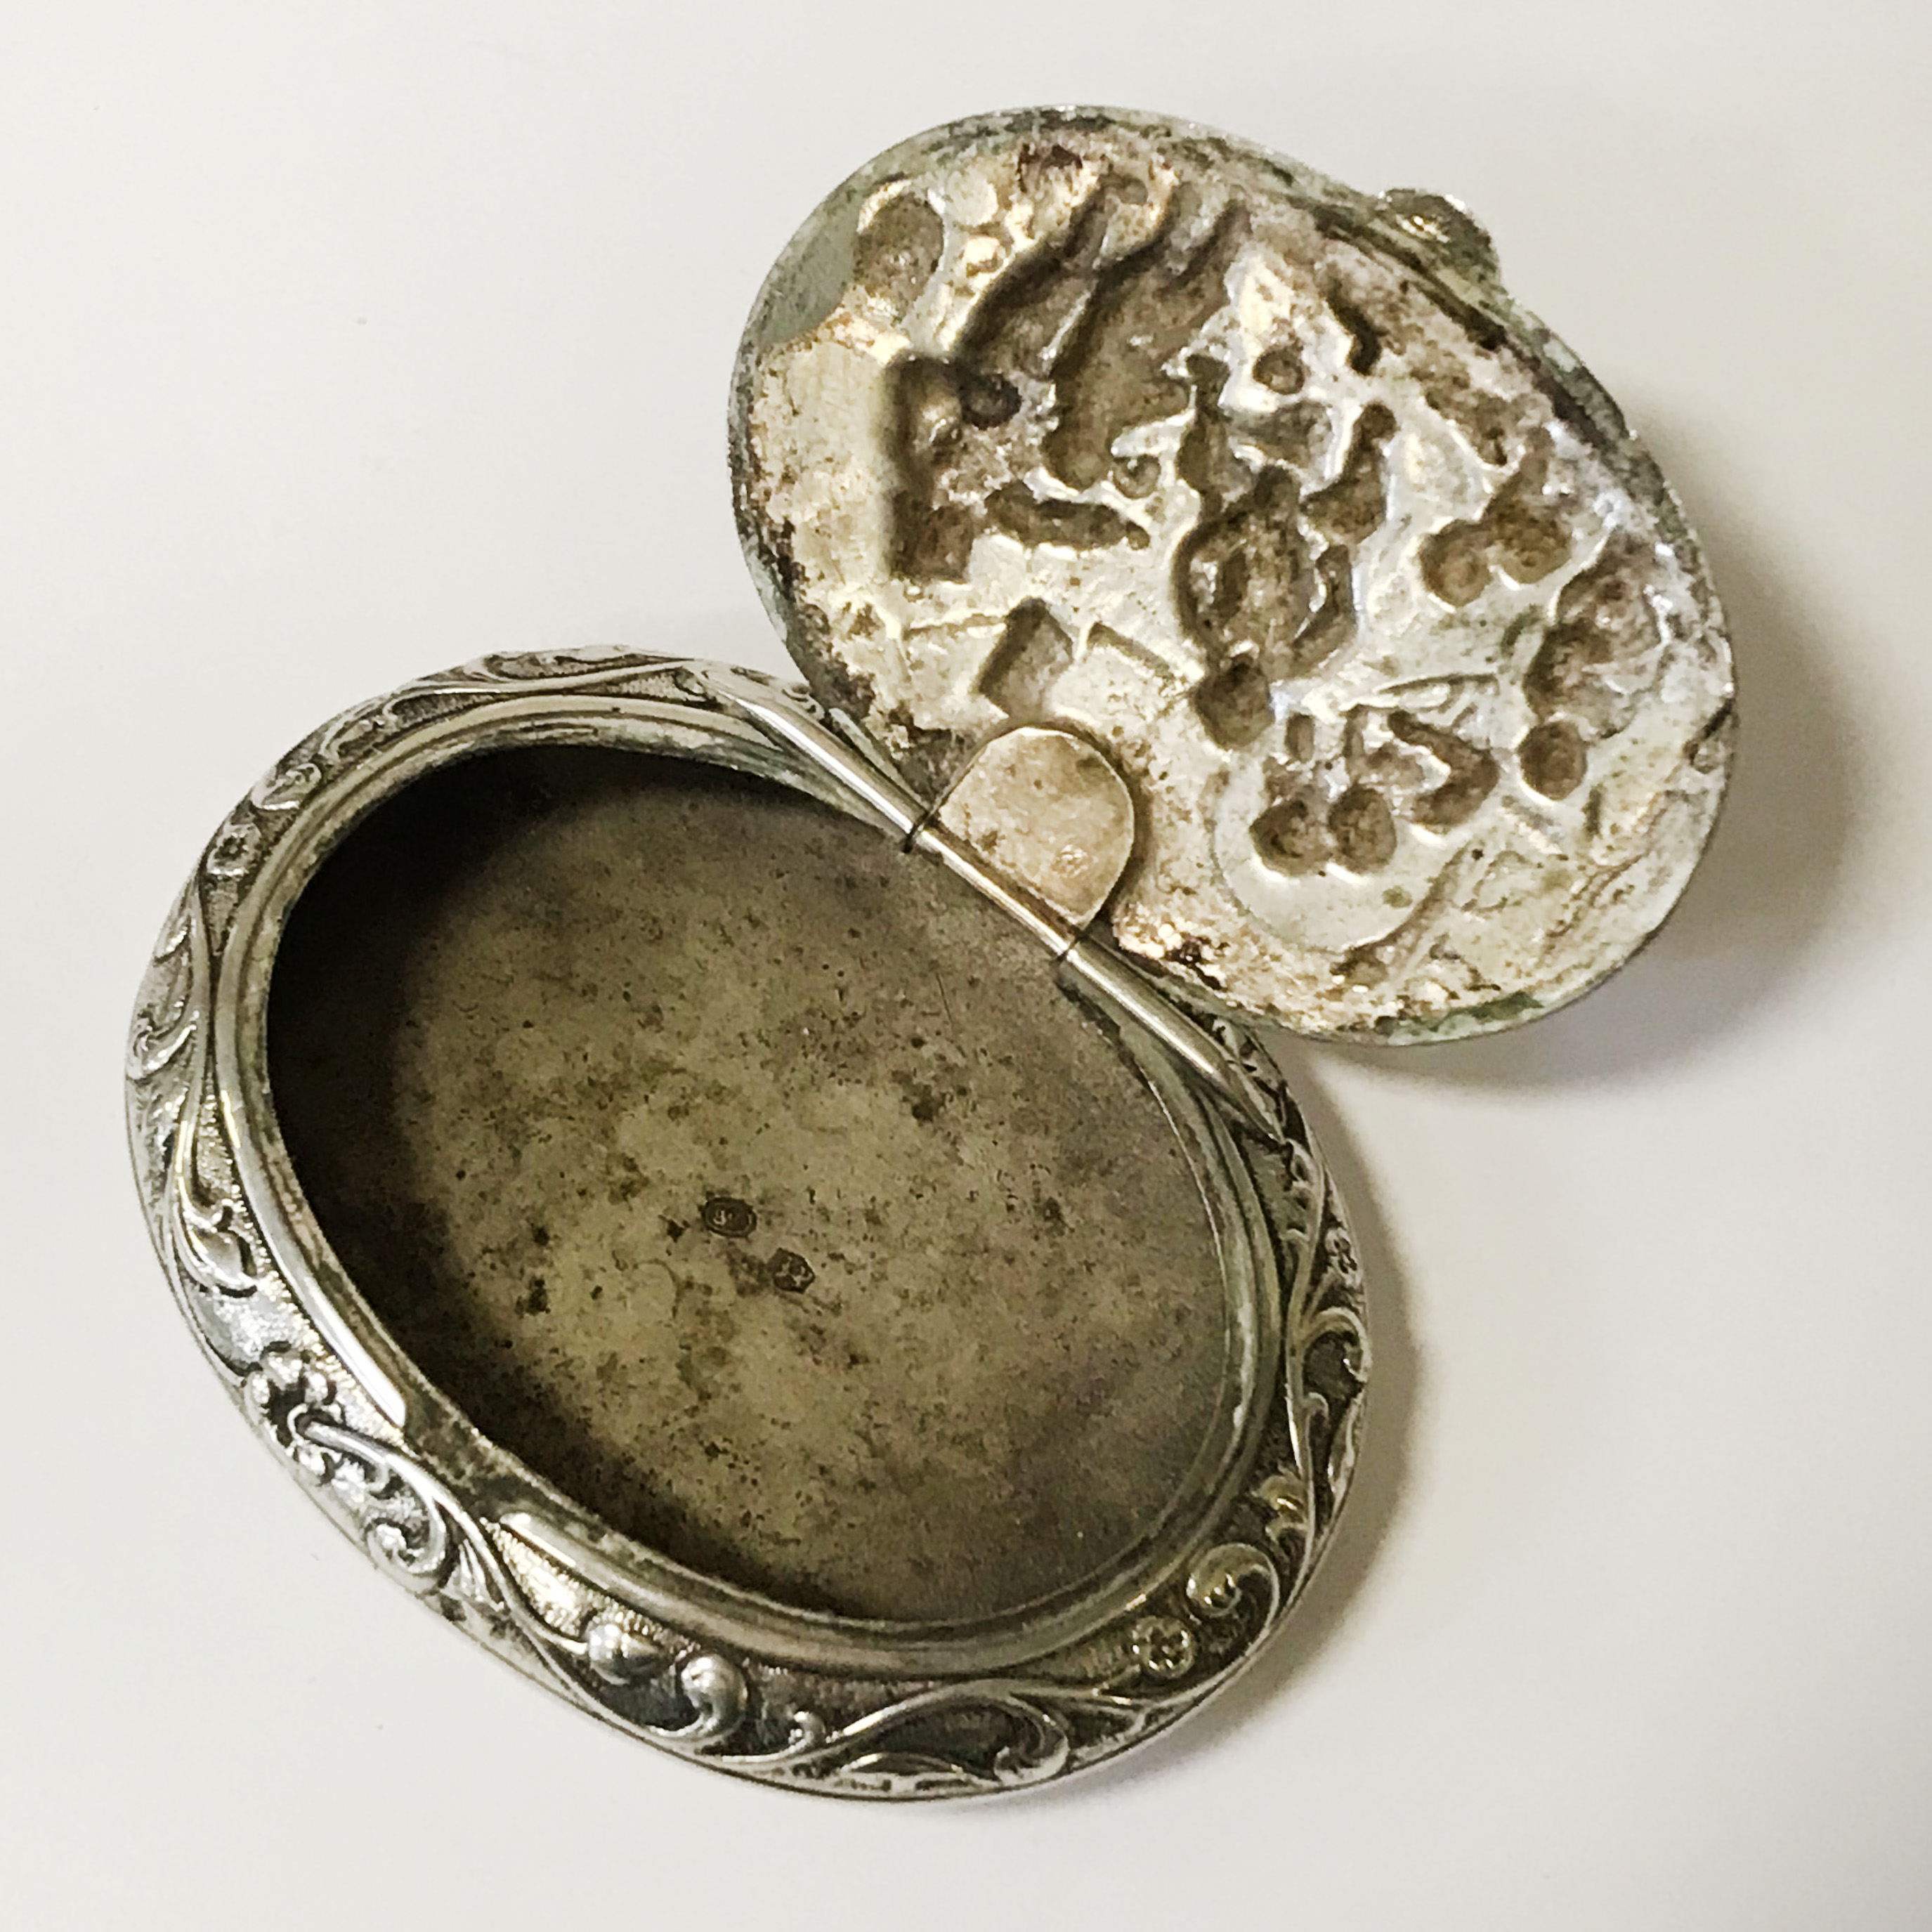 HM SILVER PILL BOX - 8CMS - Image 3 of 4